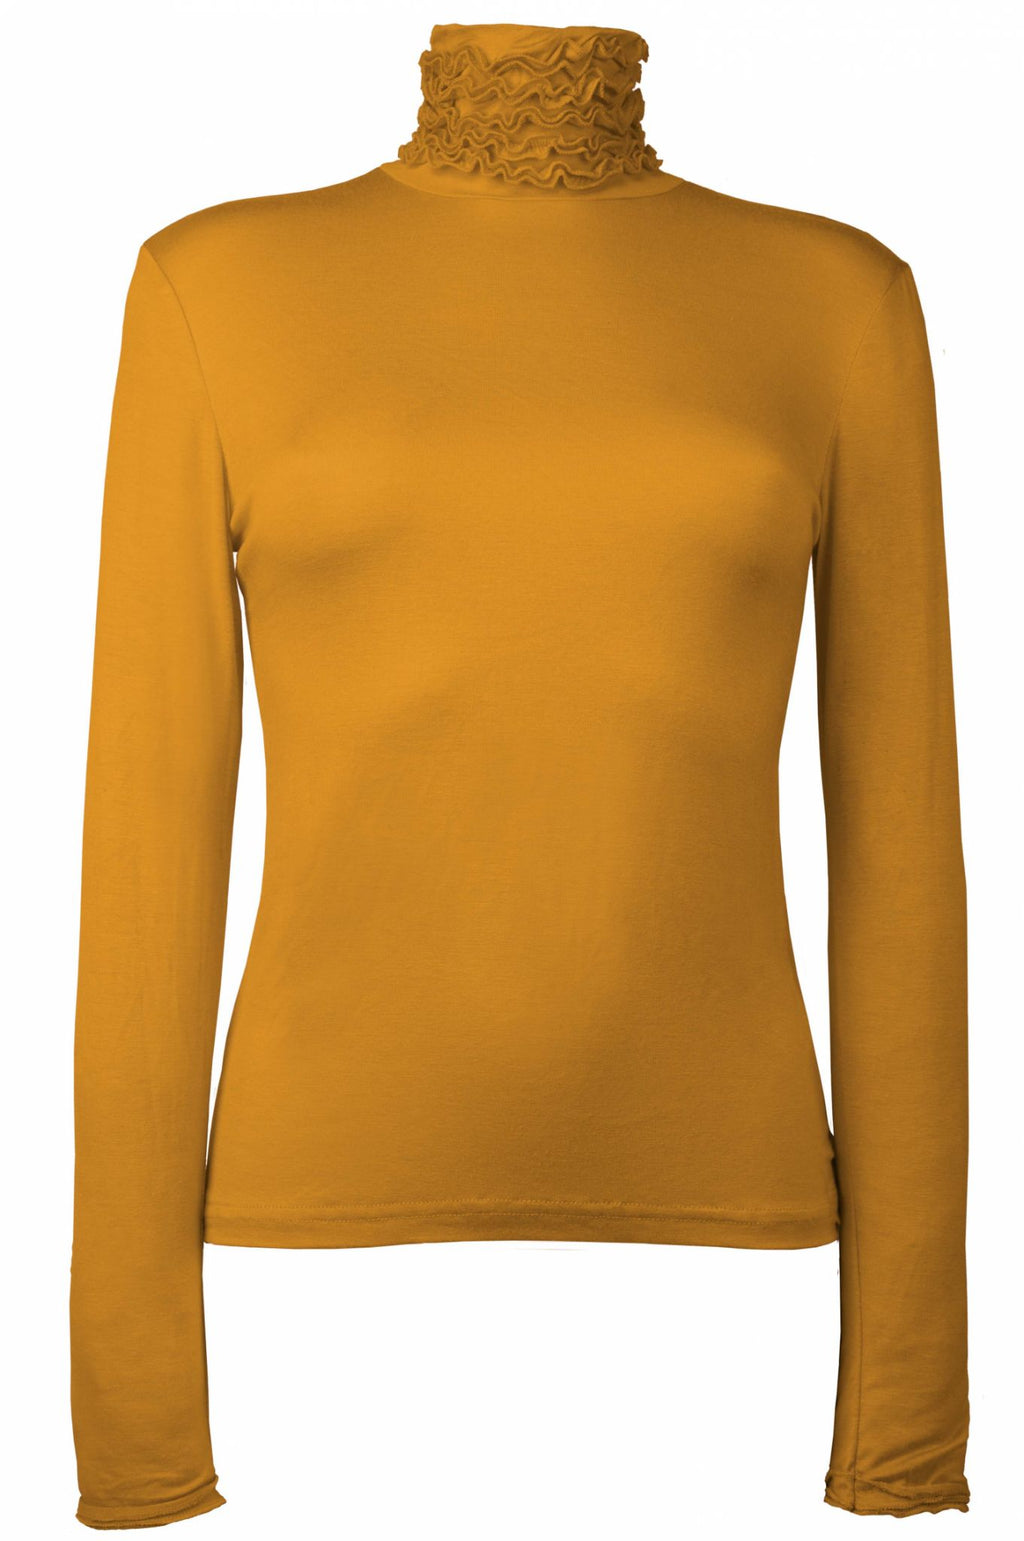 Best selling fine knit Ruffle Polo Neck Sweater in Mustard by Sally Allen